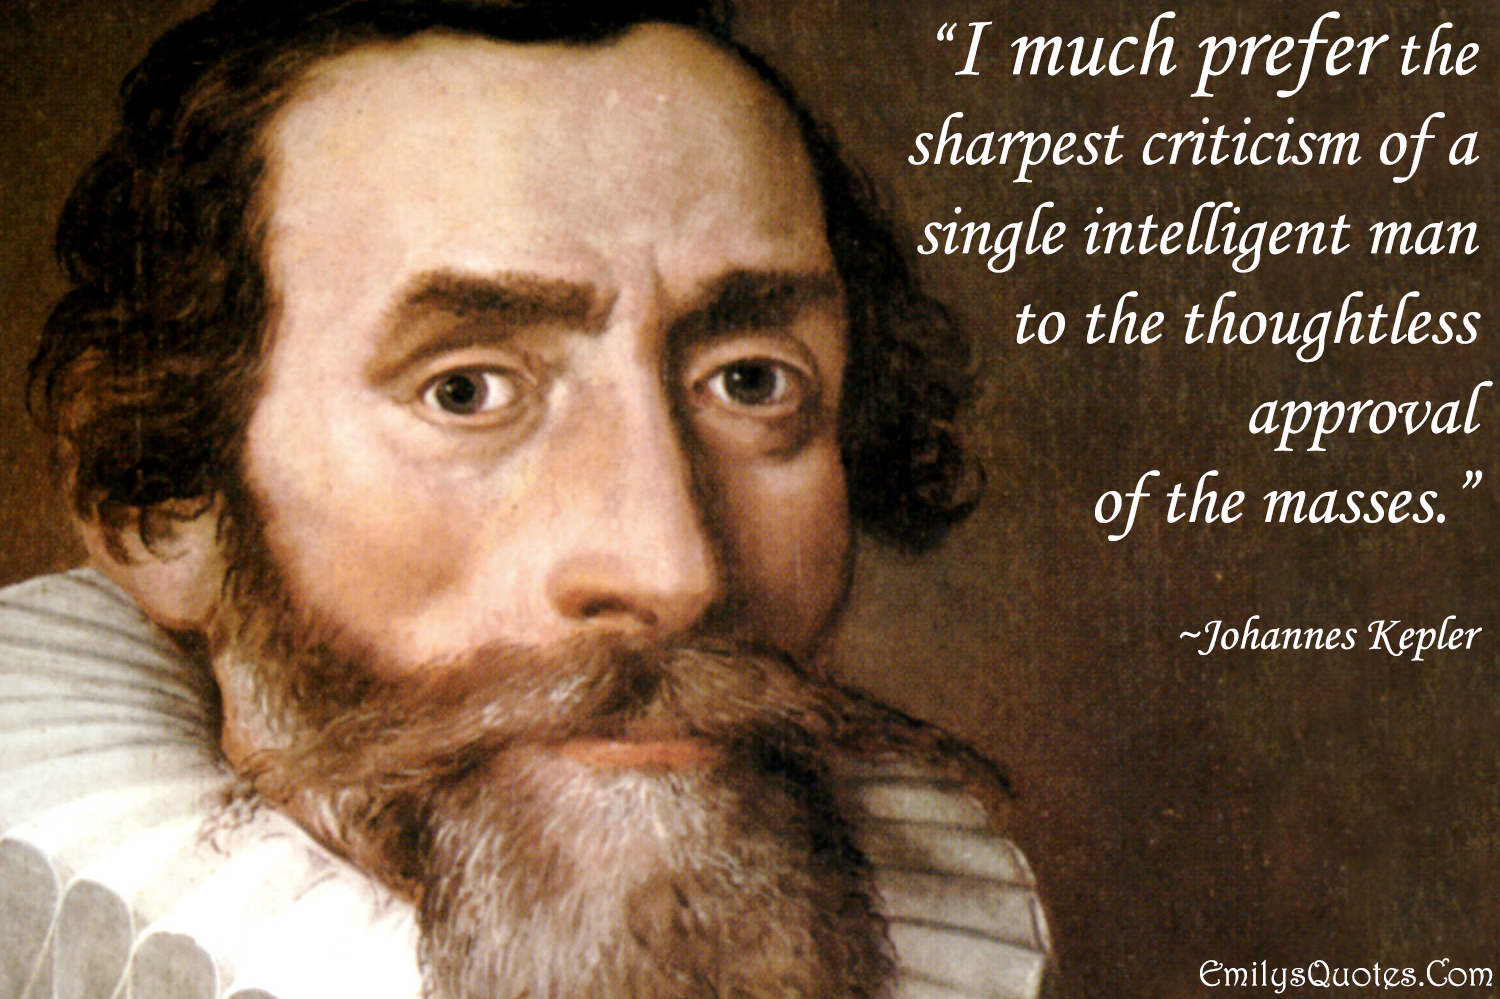 EmilysQuotes.Com - criticism, intelligence, approval, Johannes Kepler, experience